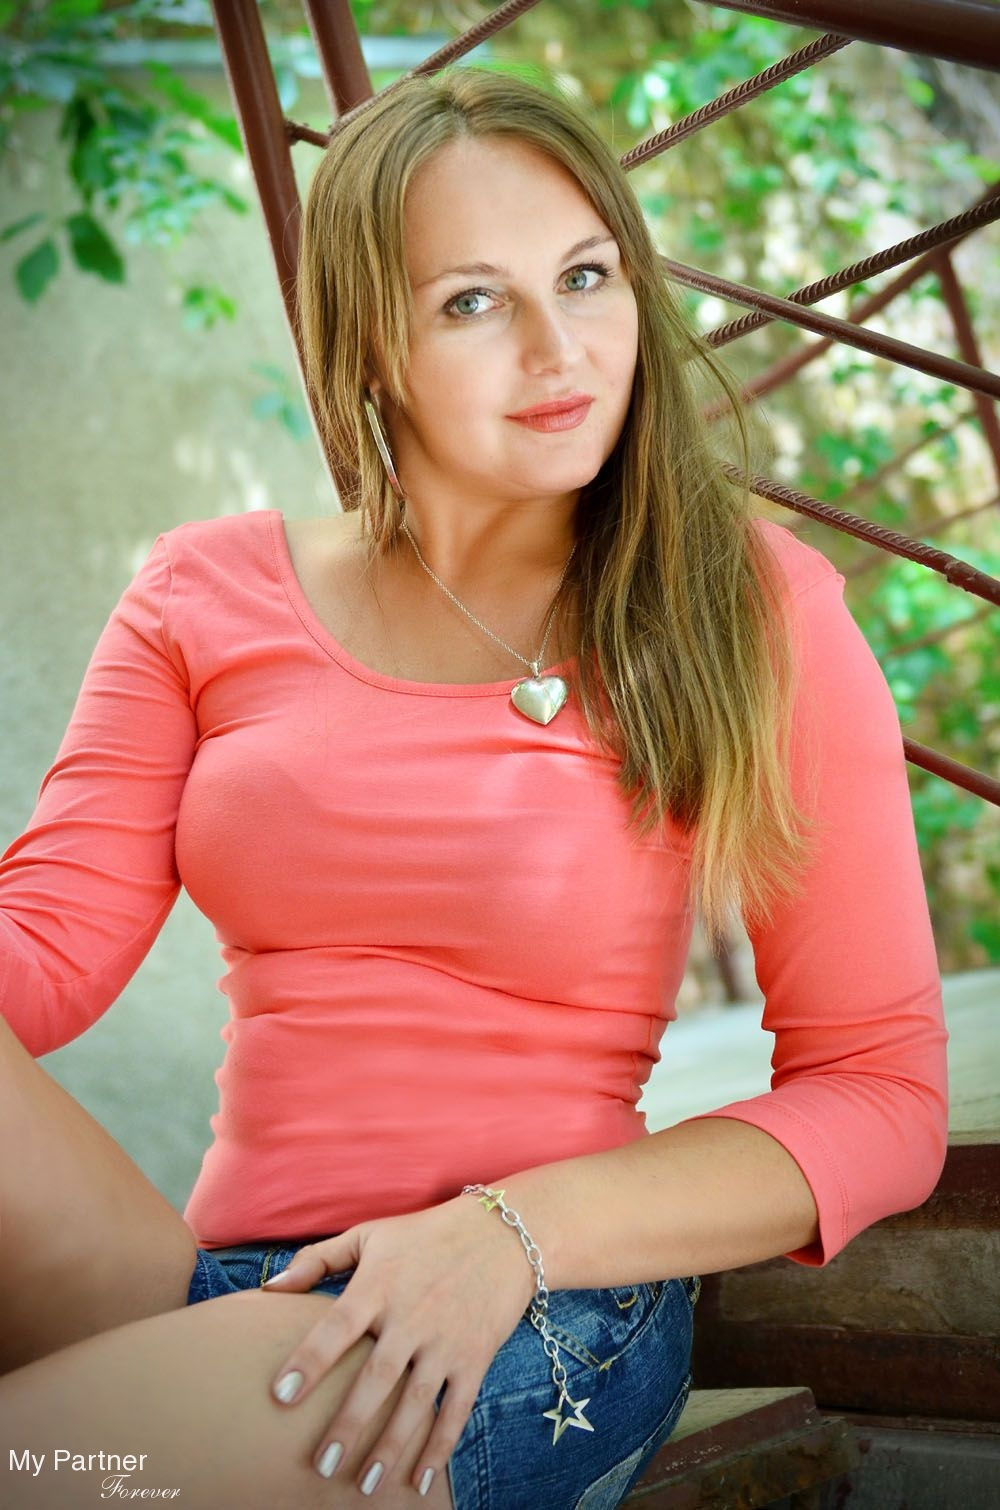 Free dating sites where can a girl meet a girl